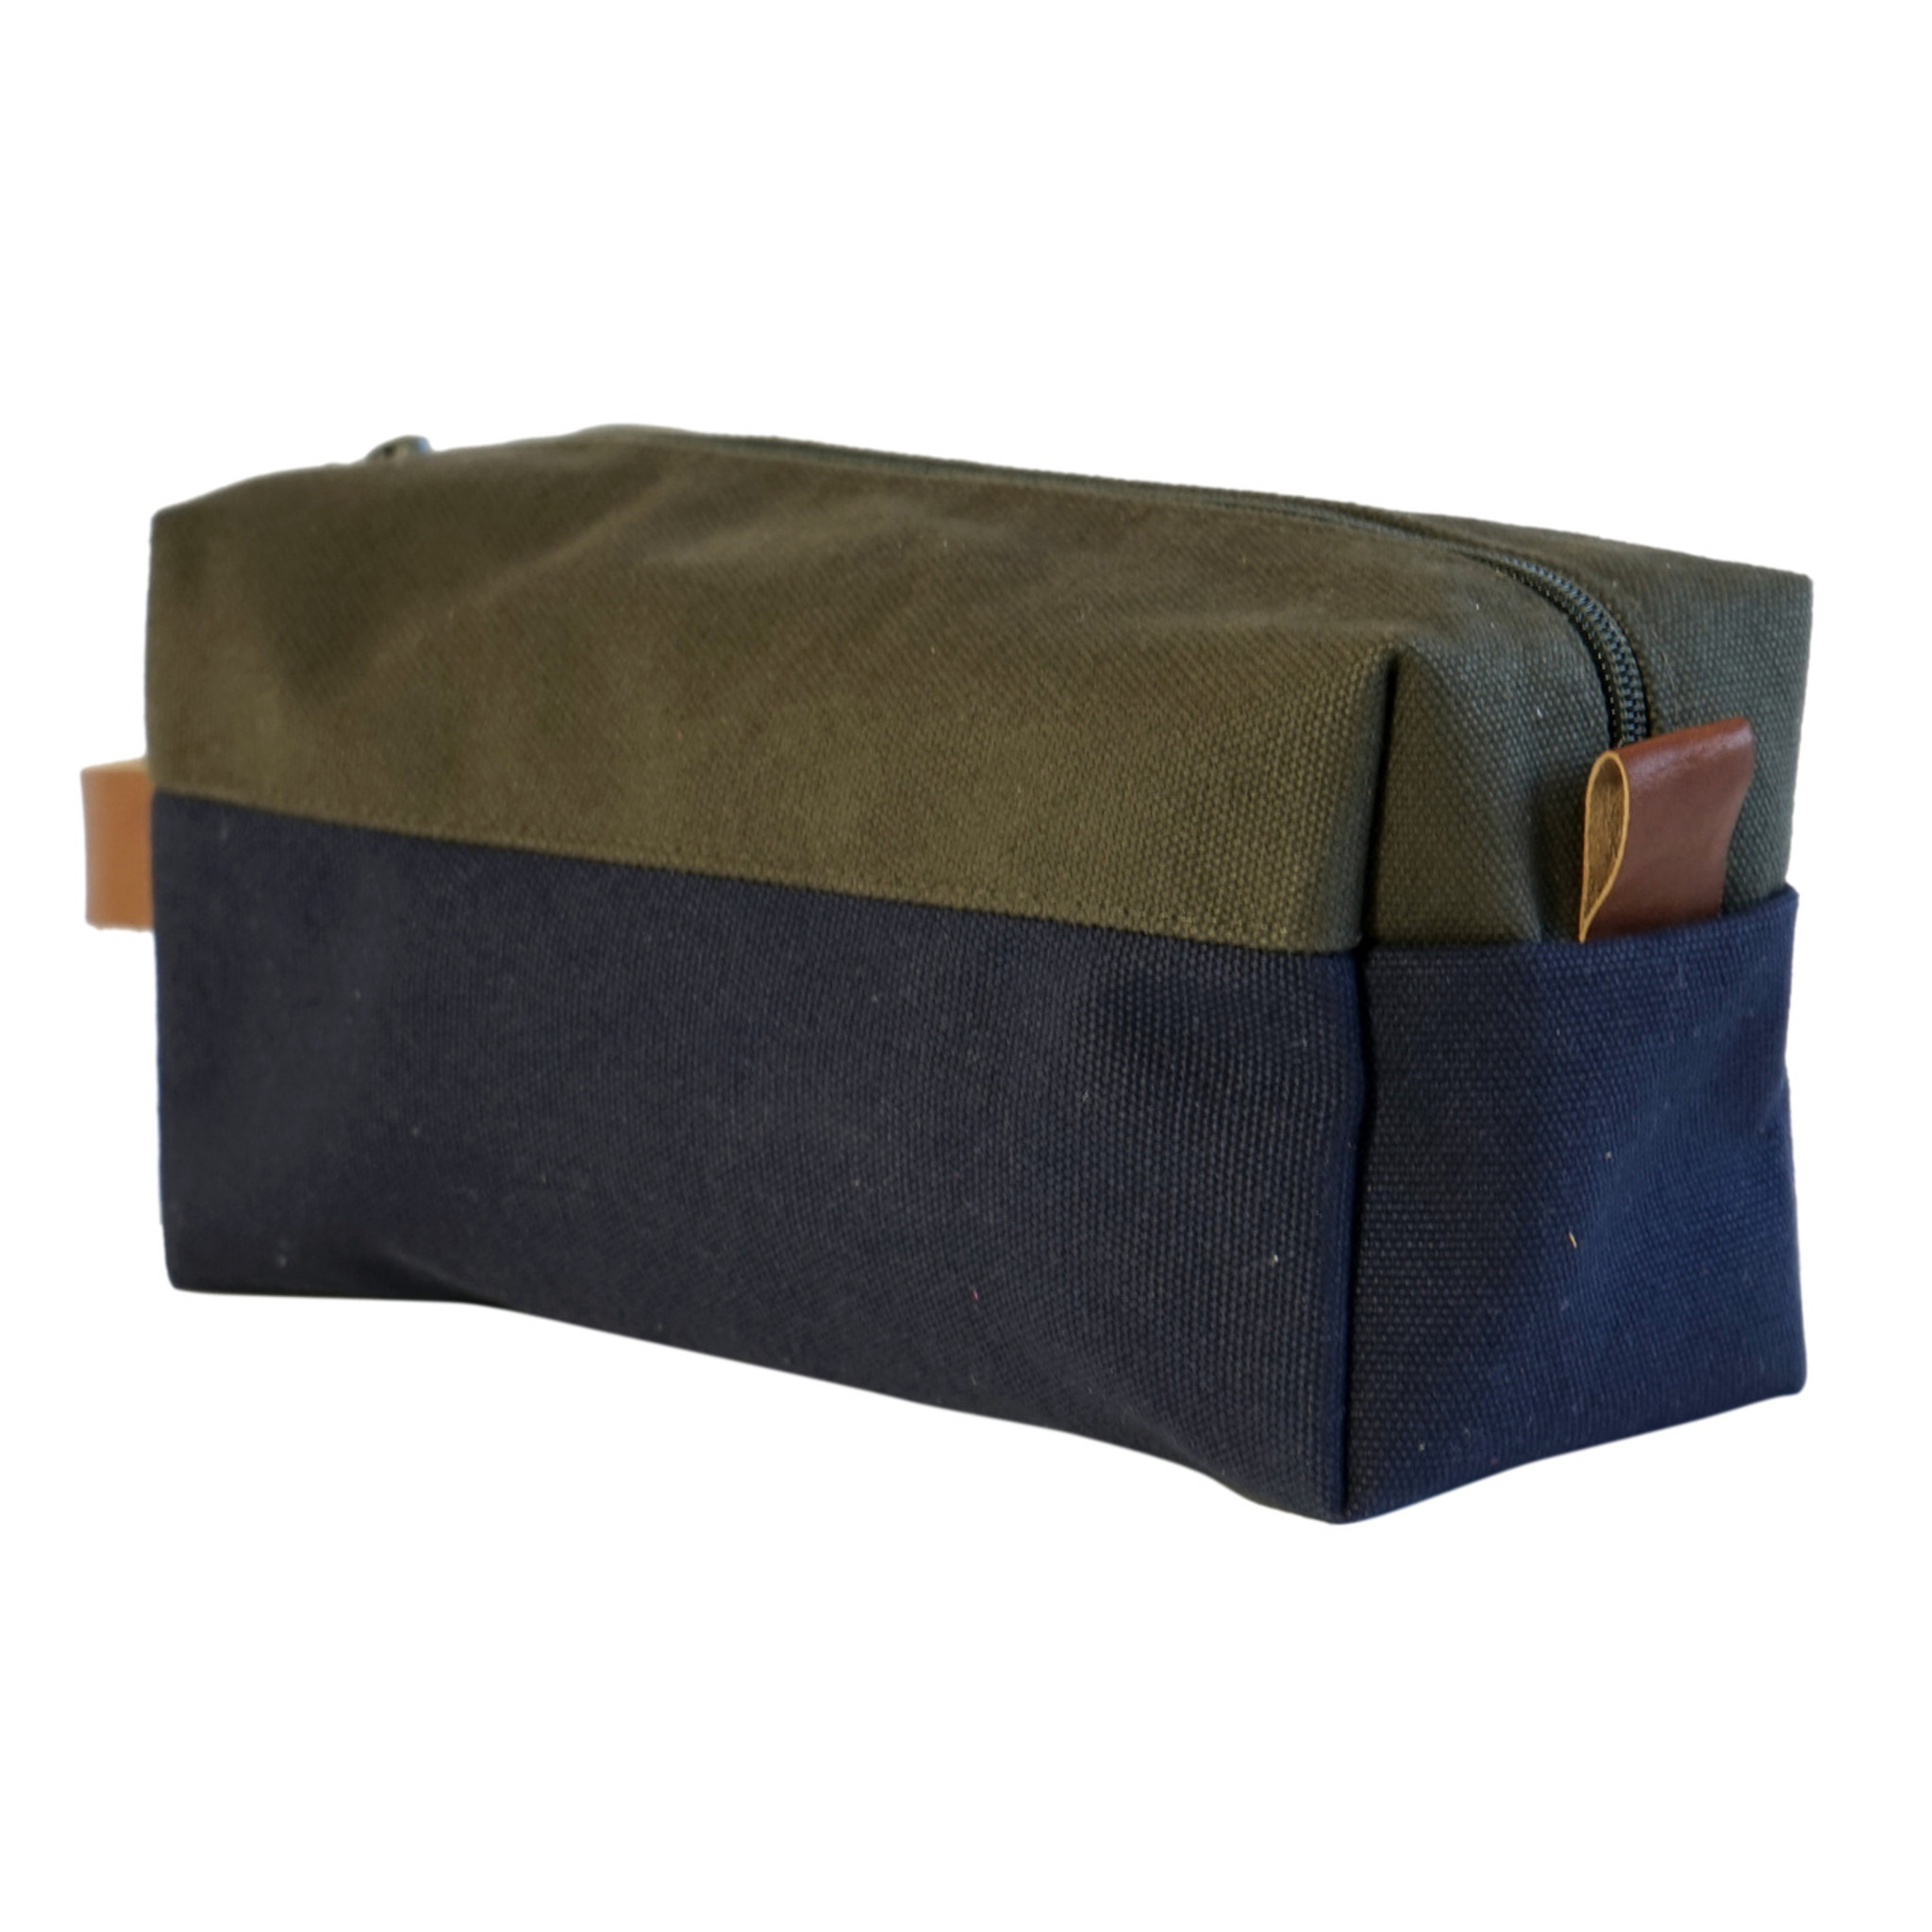 Dopp Kit in Olive/Navy Canvas